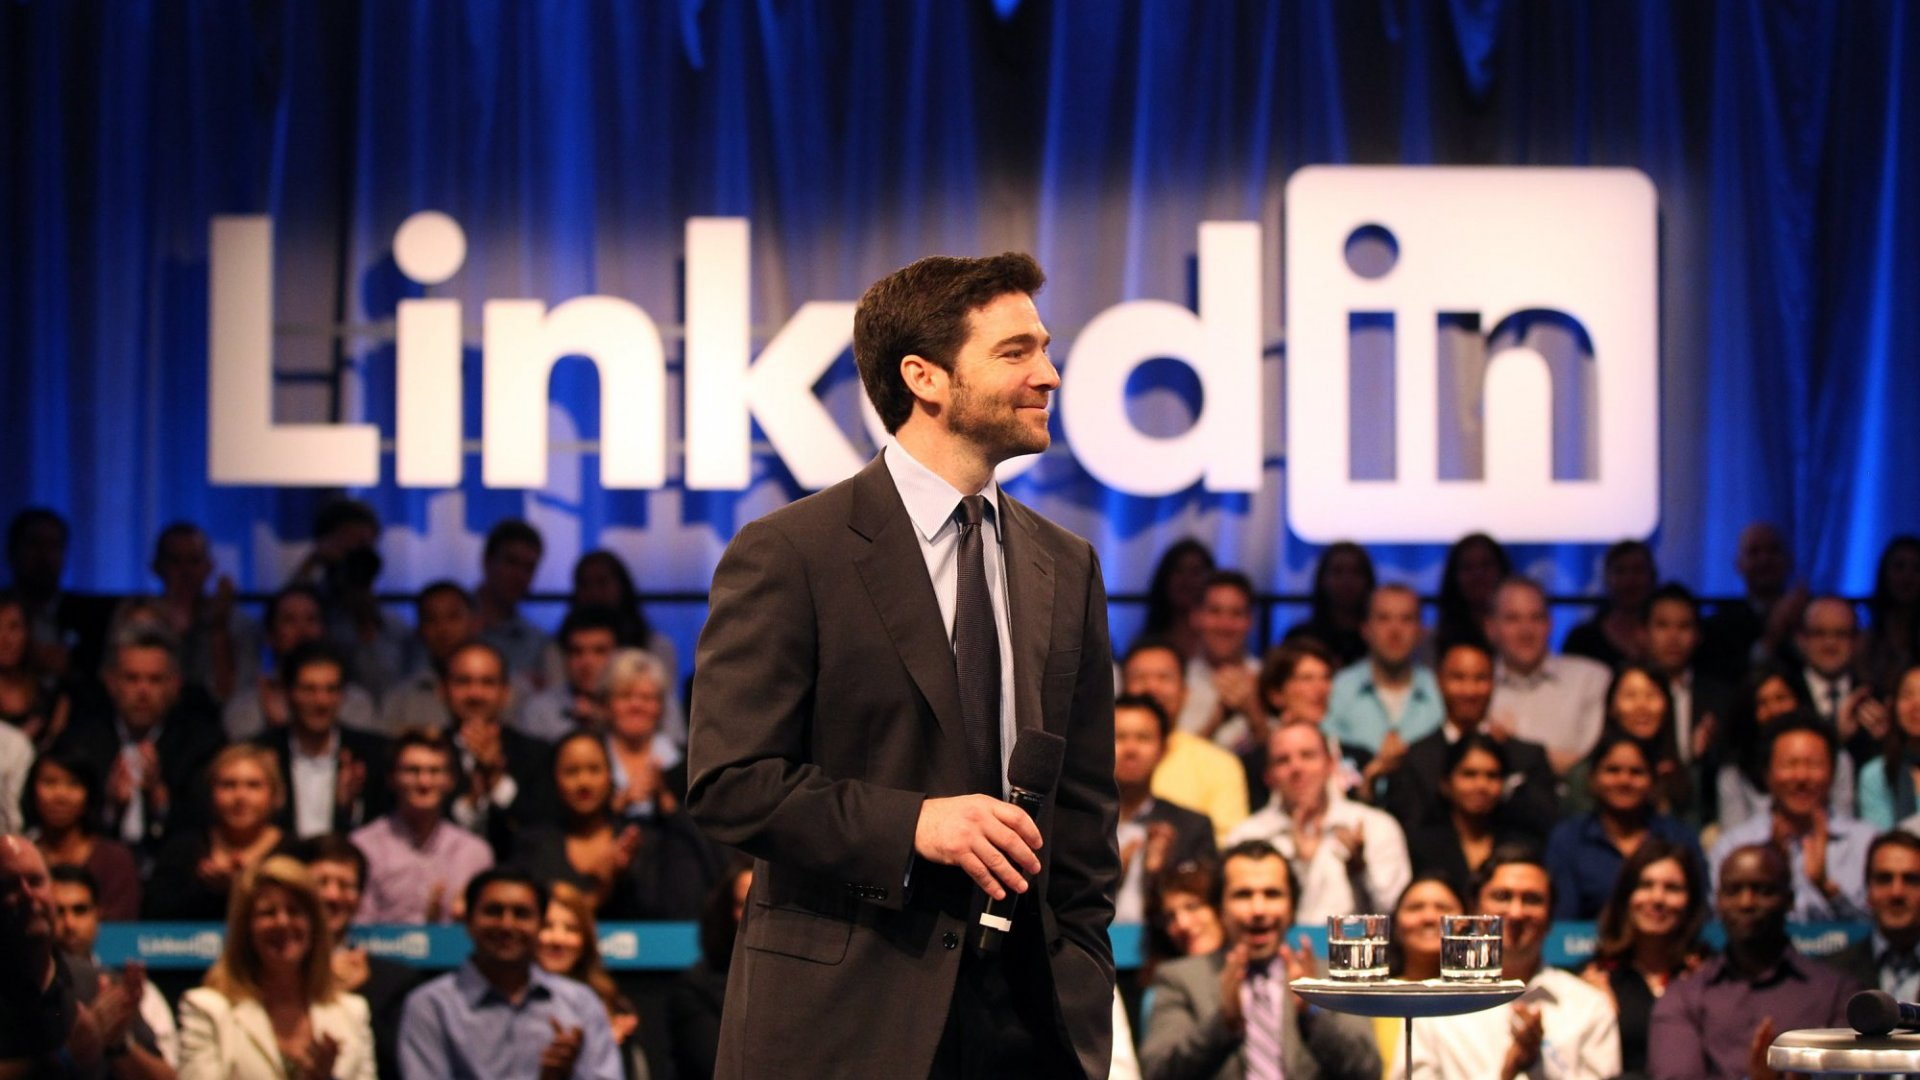 Get to Know LinkedIn CEO Jeff Weiner: 10 Facts You Haven't Heard